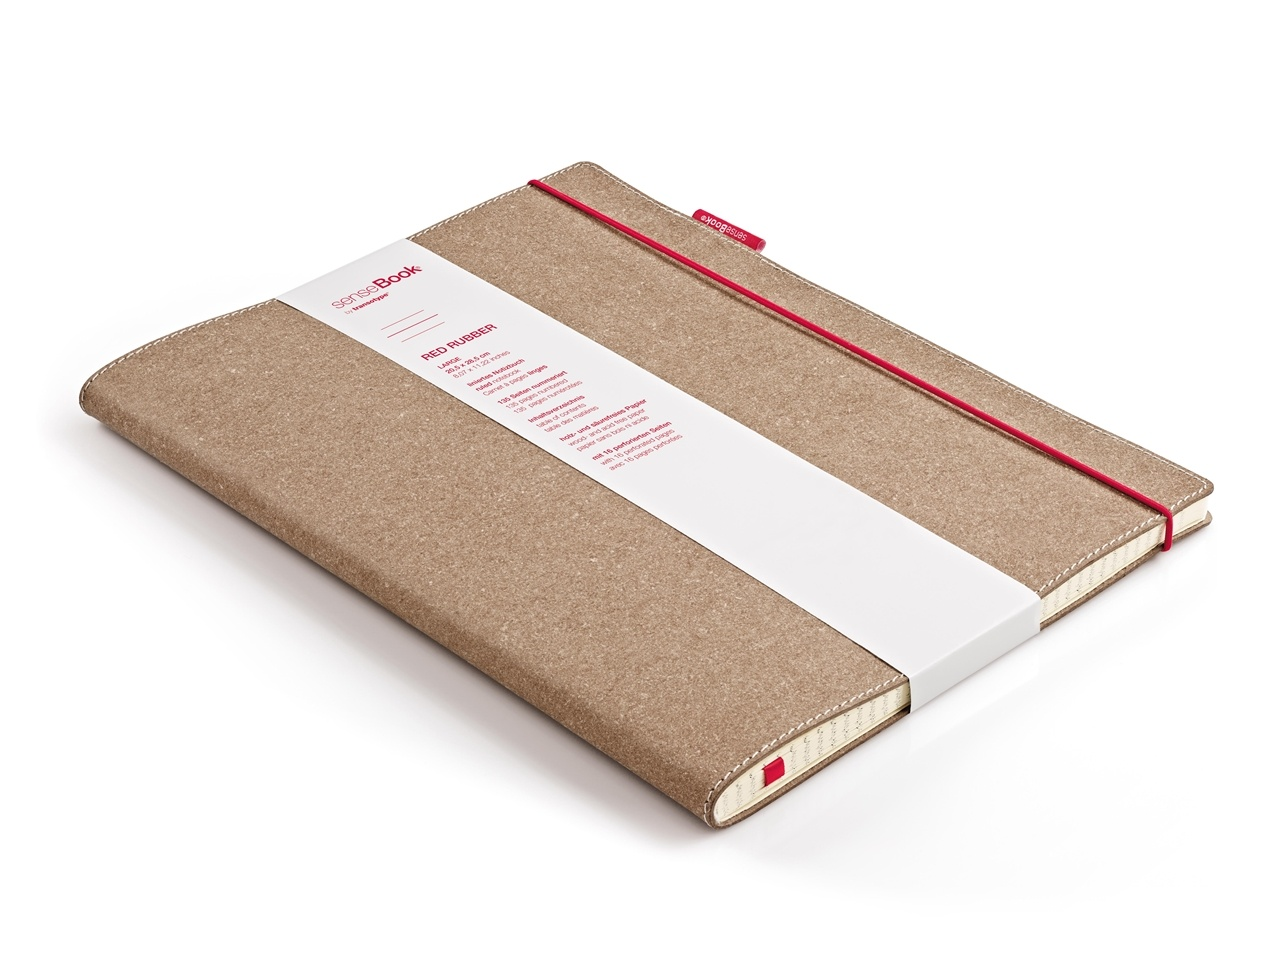 0015572_sensebook-red-rubber-a4-large-ruled